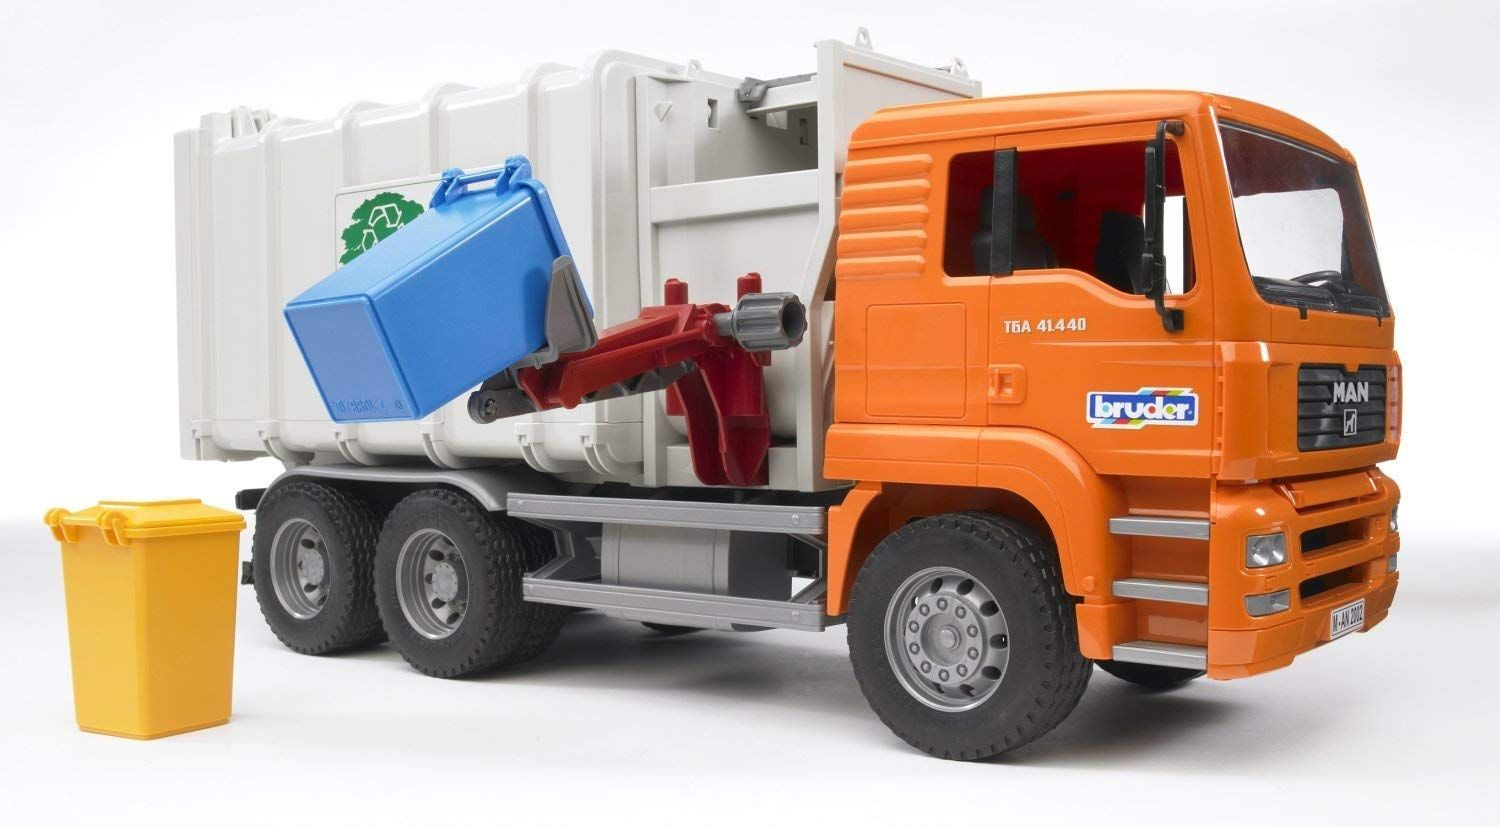 Bruder Toys Man Side Loading Garbage Truck This Is A Great Gift Idea For Our 4 Year Old It S Educational Toys For Kids Cool Toys For Boys Best Christmas Toys